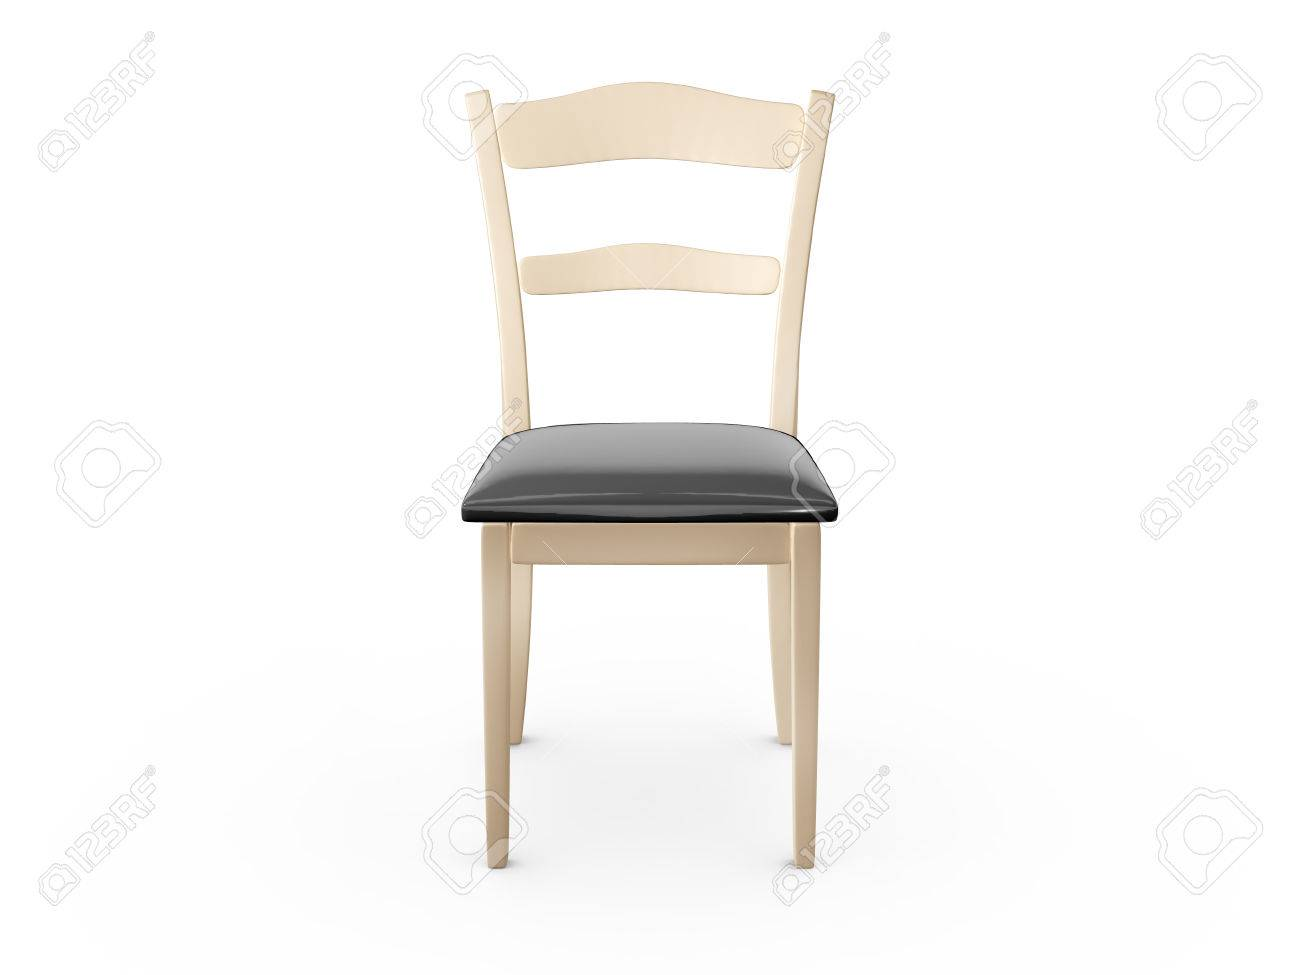 Wooden chair front view - Front View Of Wooden Chair Isolated On White Stock Photo 24710426